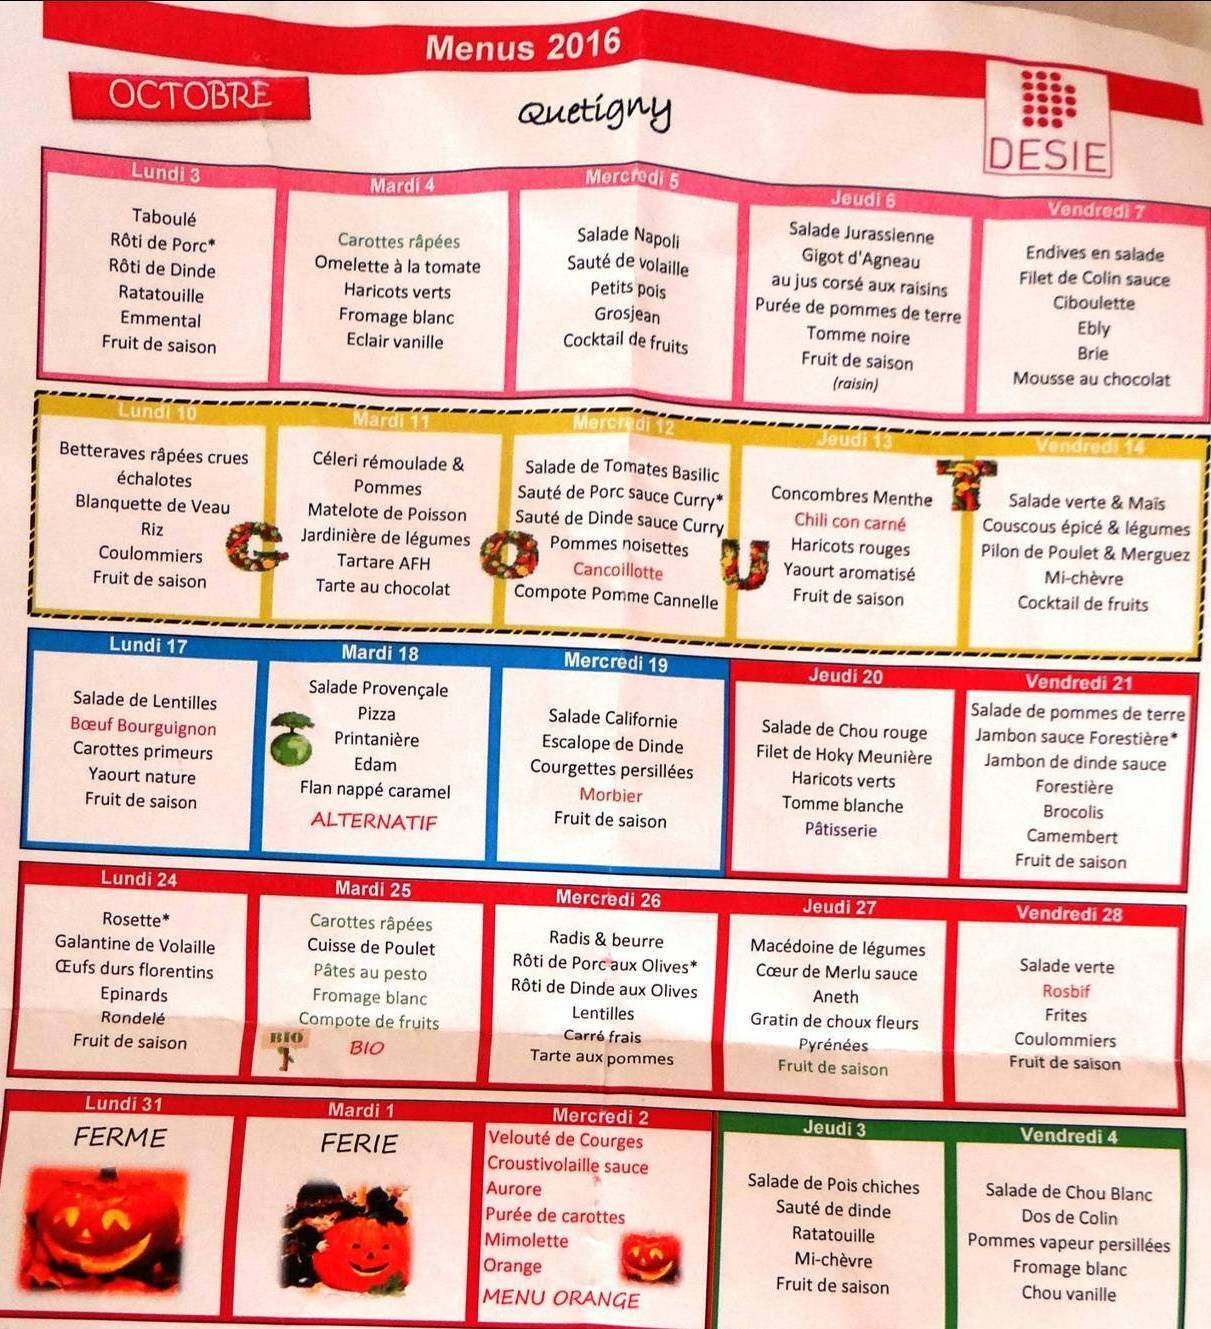 Menu Octobre 2016.jpg